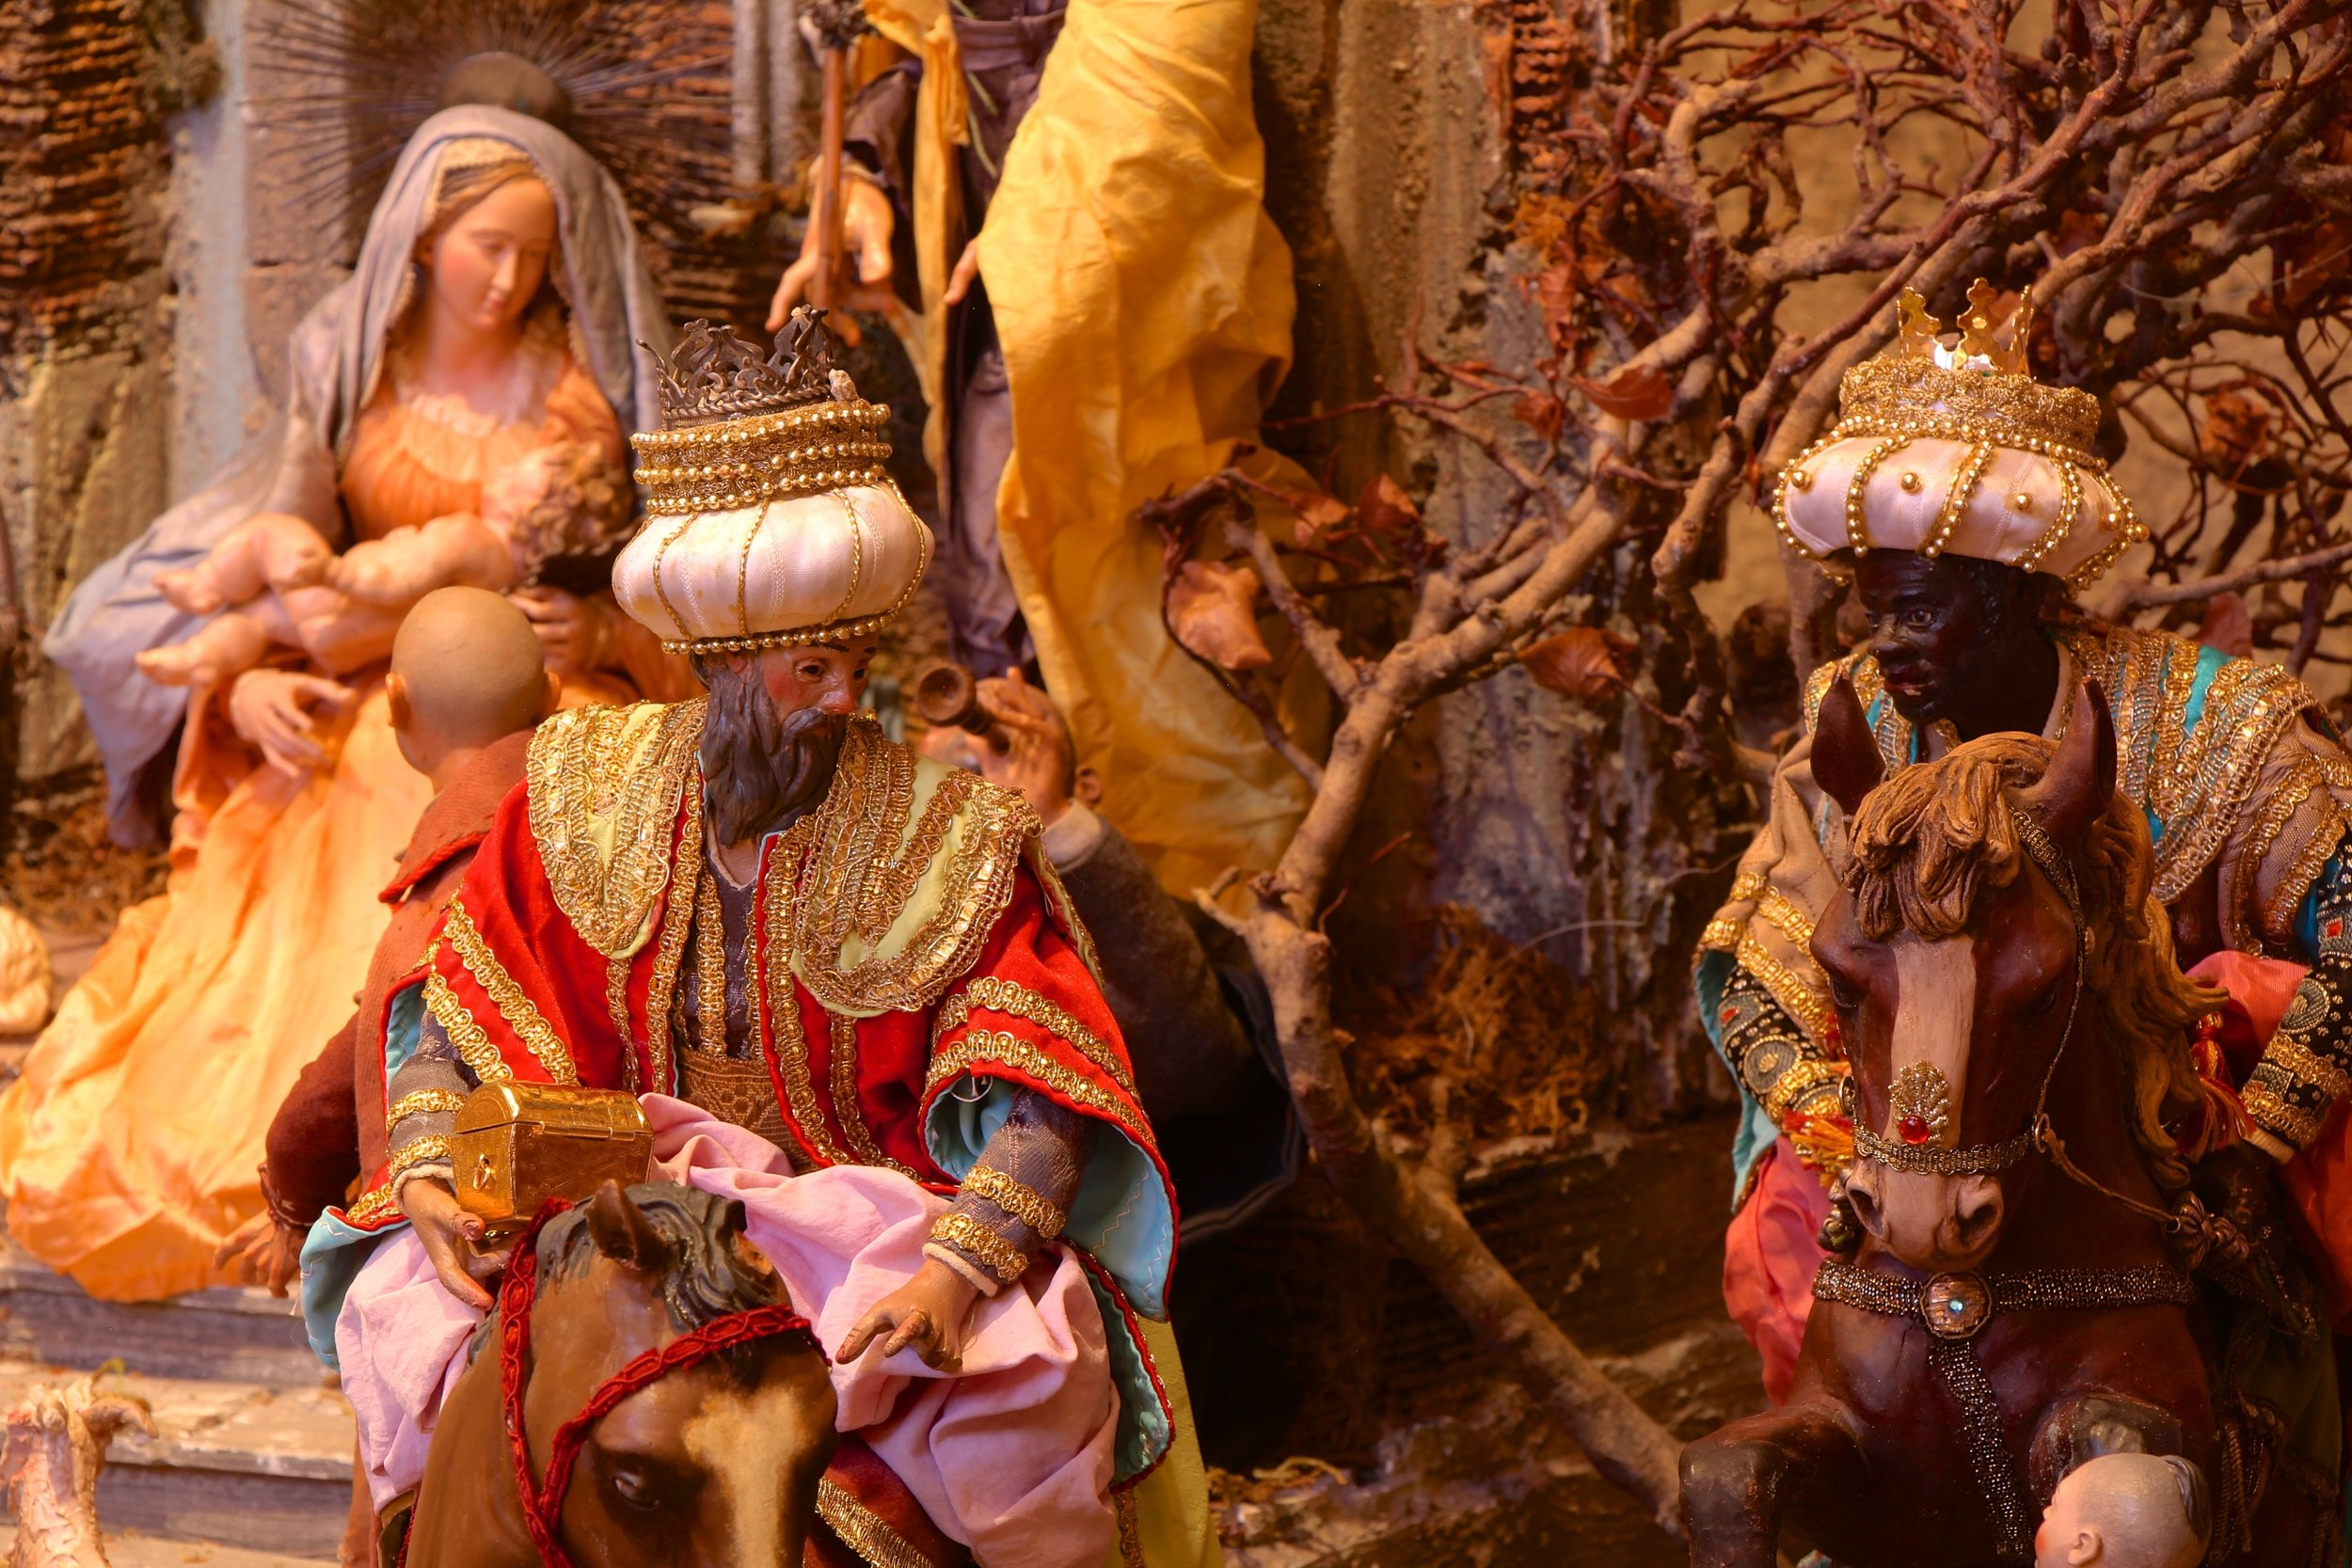 Figure 20: The wise men arrive on horses, carrying costly gifts of gold, frankincense and myrrh for the Christ Child.